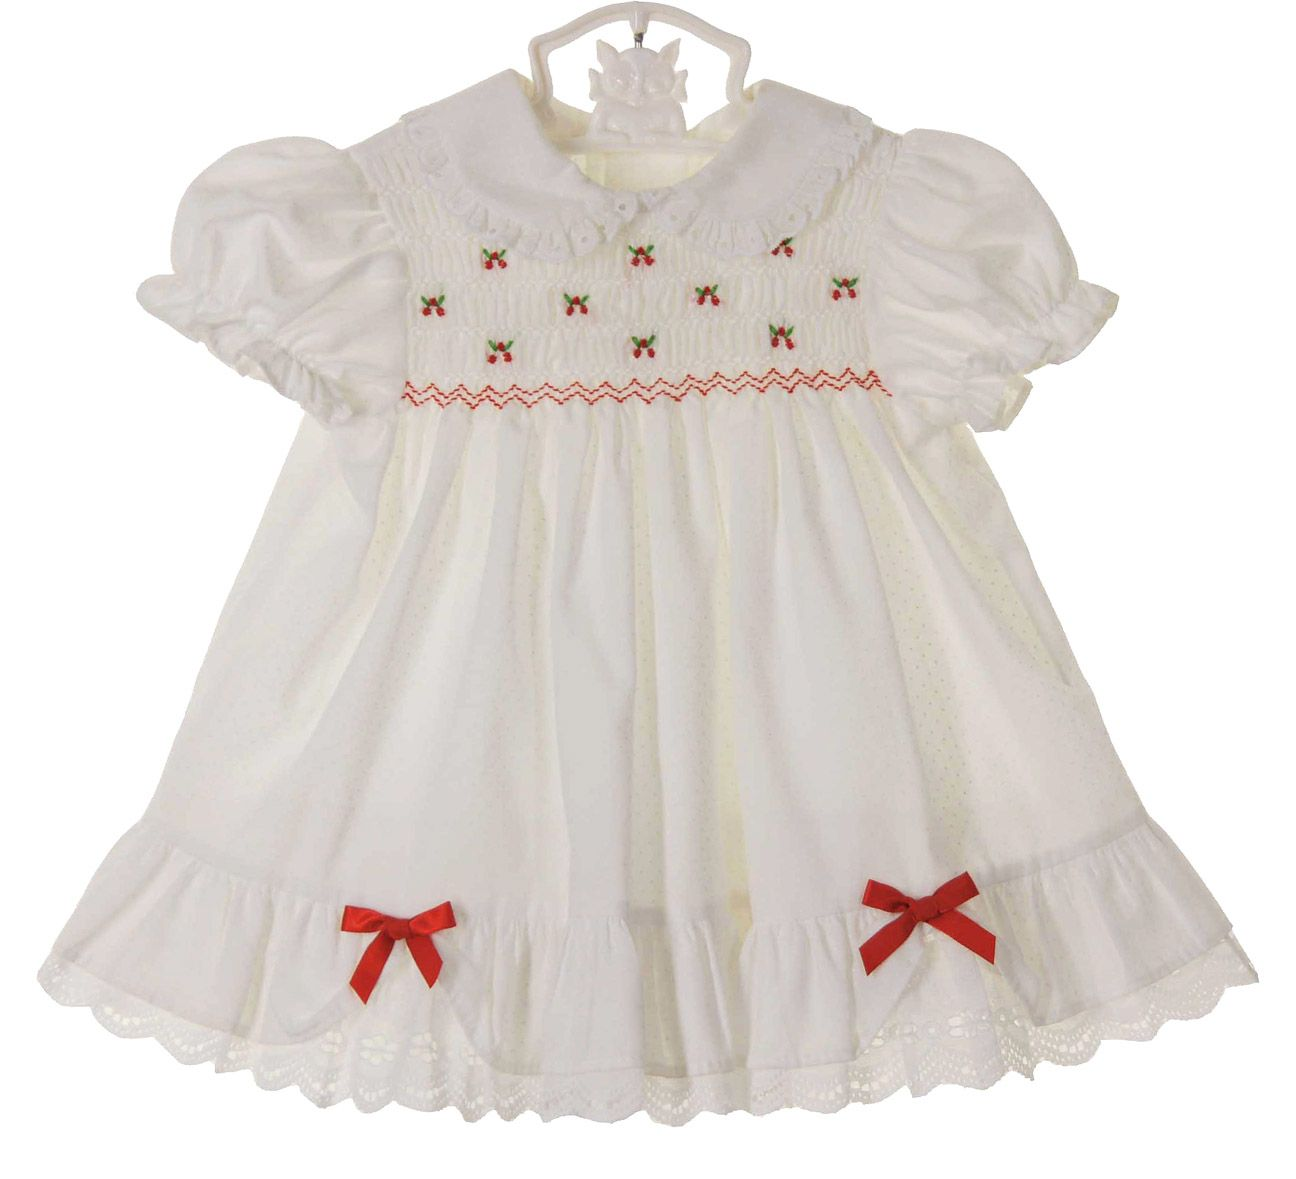 4052398b3123 Polly Flinders White Dotted Smocked Dress with Embroidered Red Flowers  $45.00